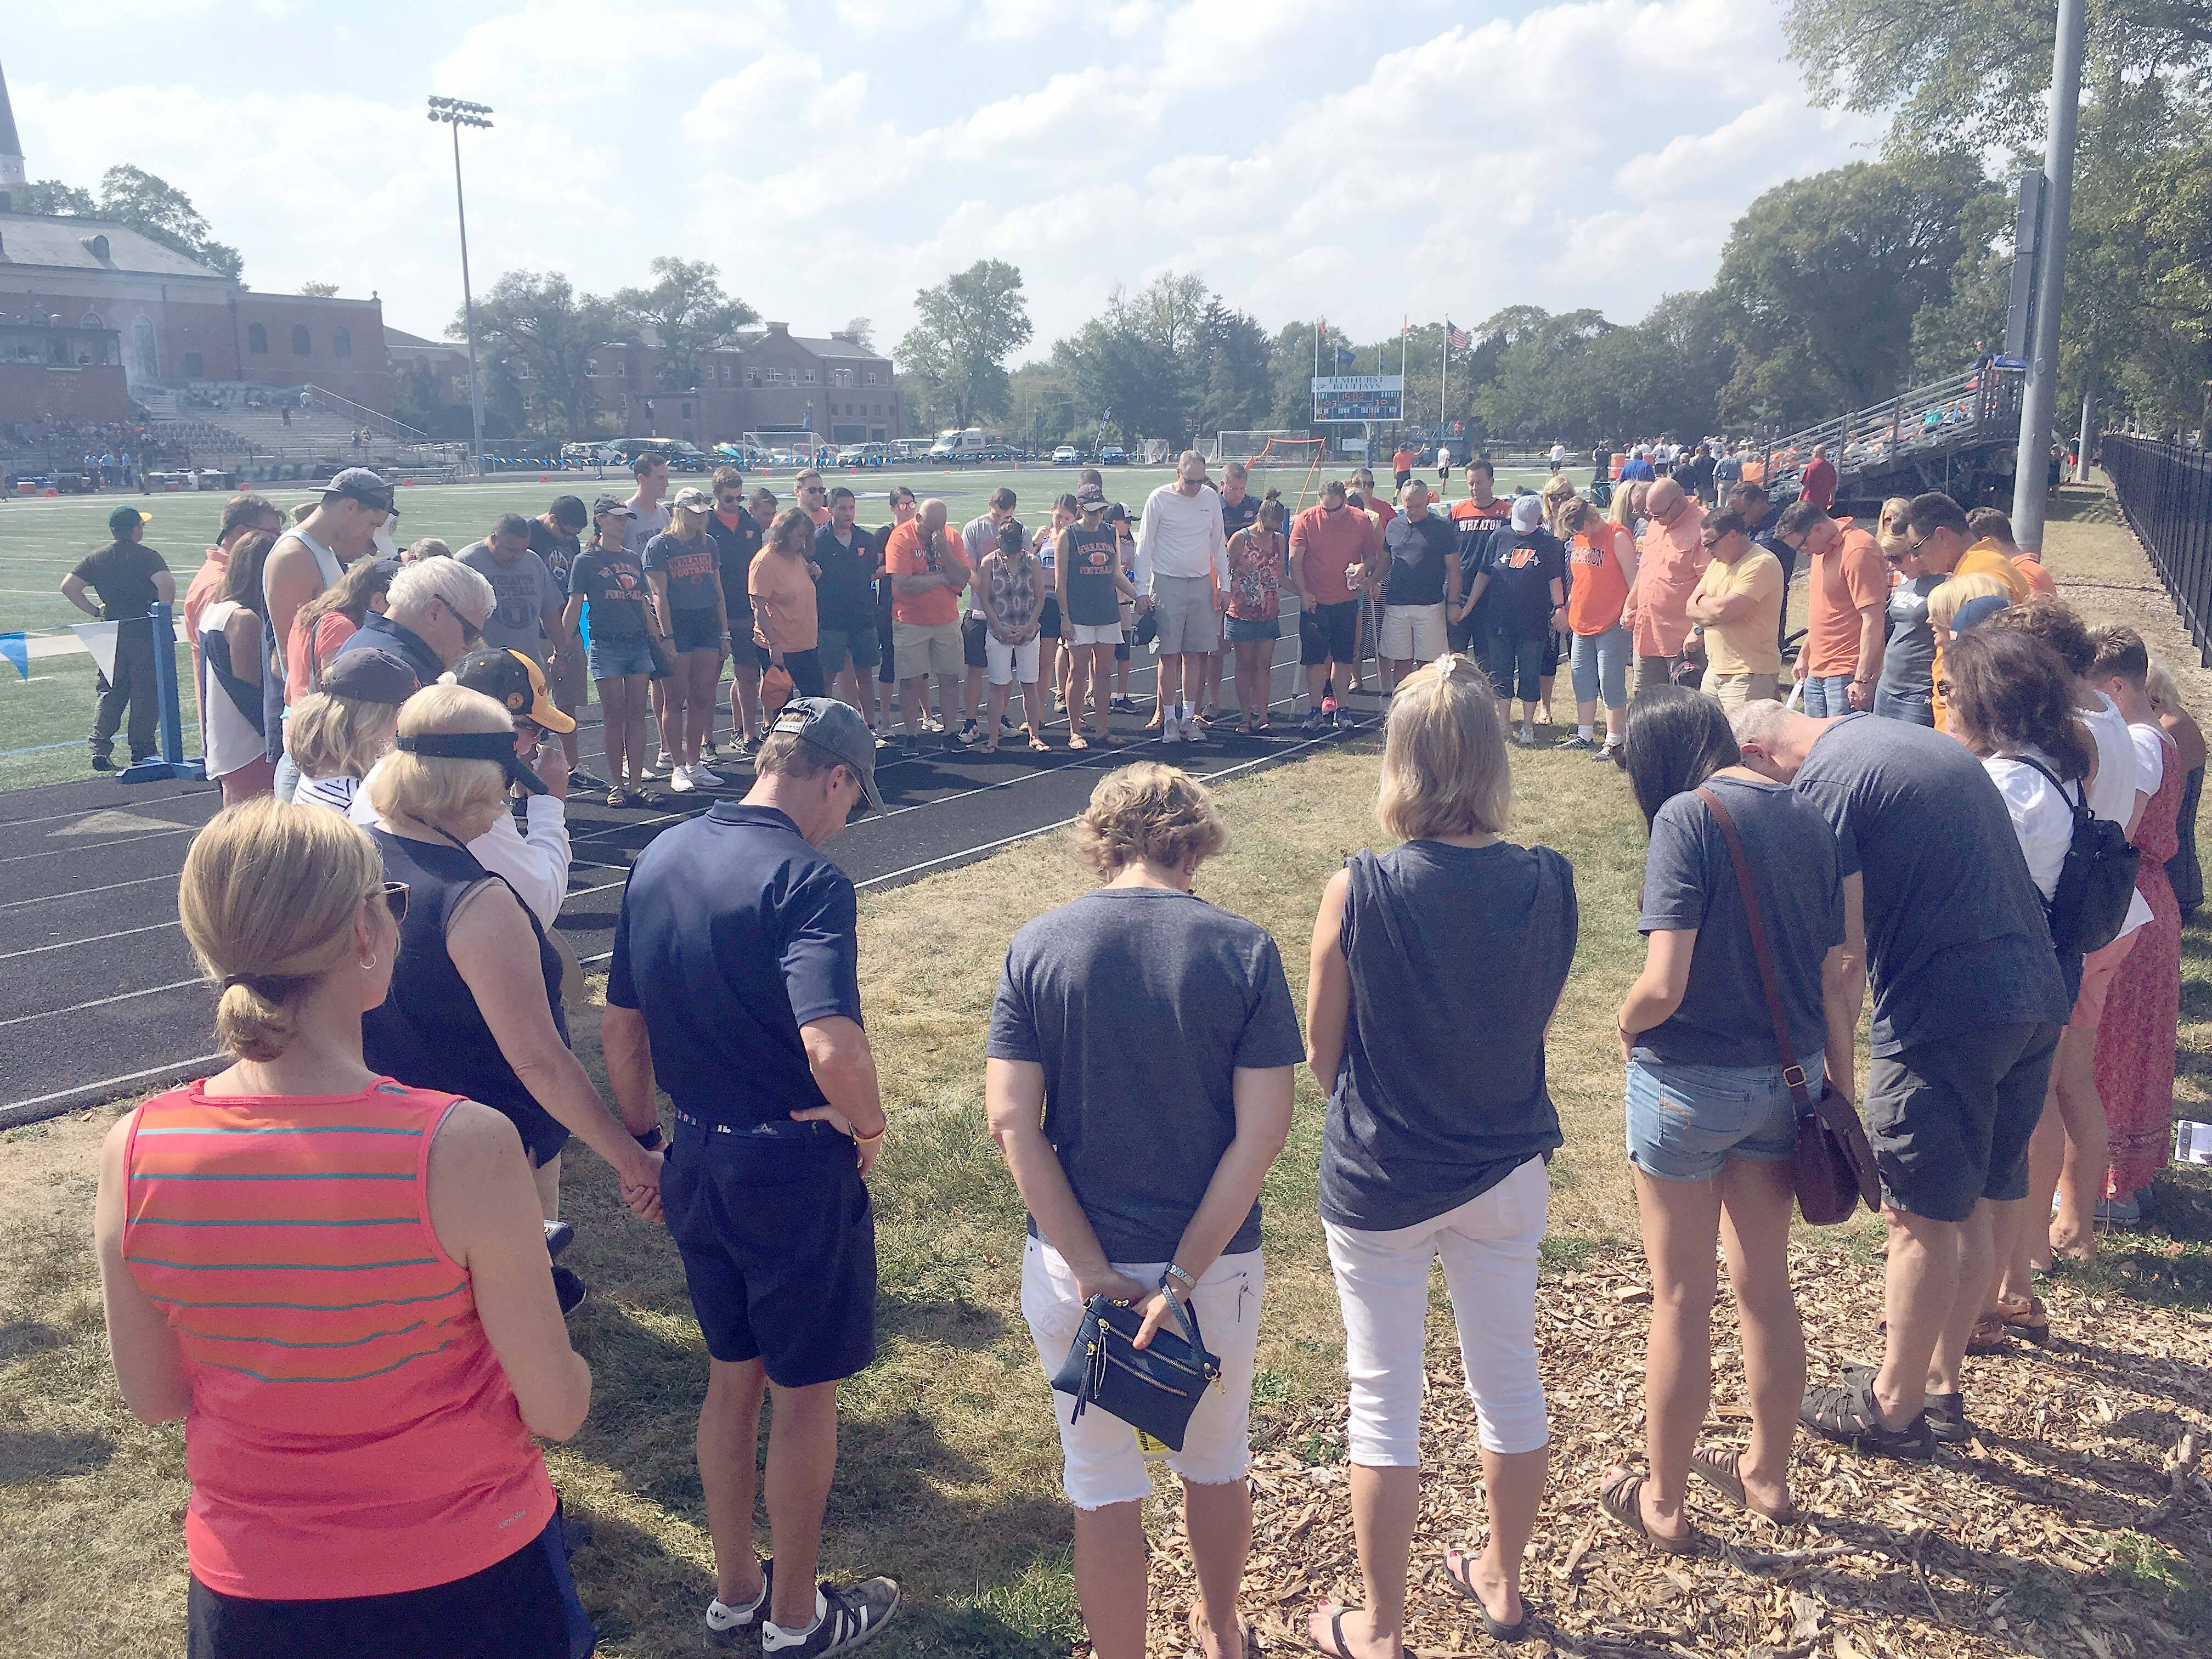 Wheaton College fans pray before a football game Saturday at Elmhurst College, the first since charges against five players in connection to a hazing incident.